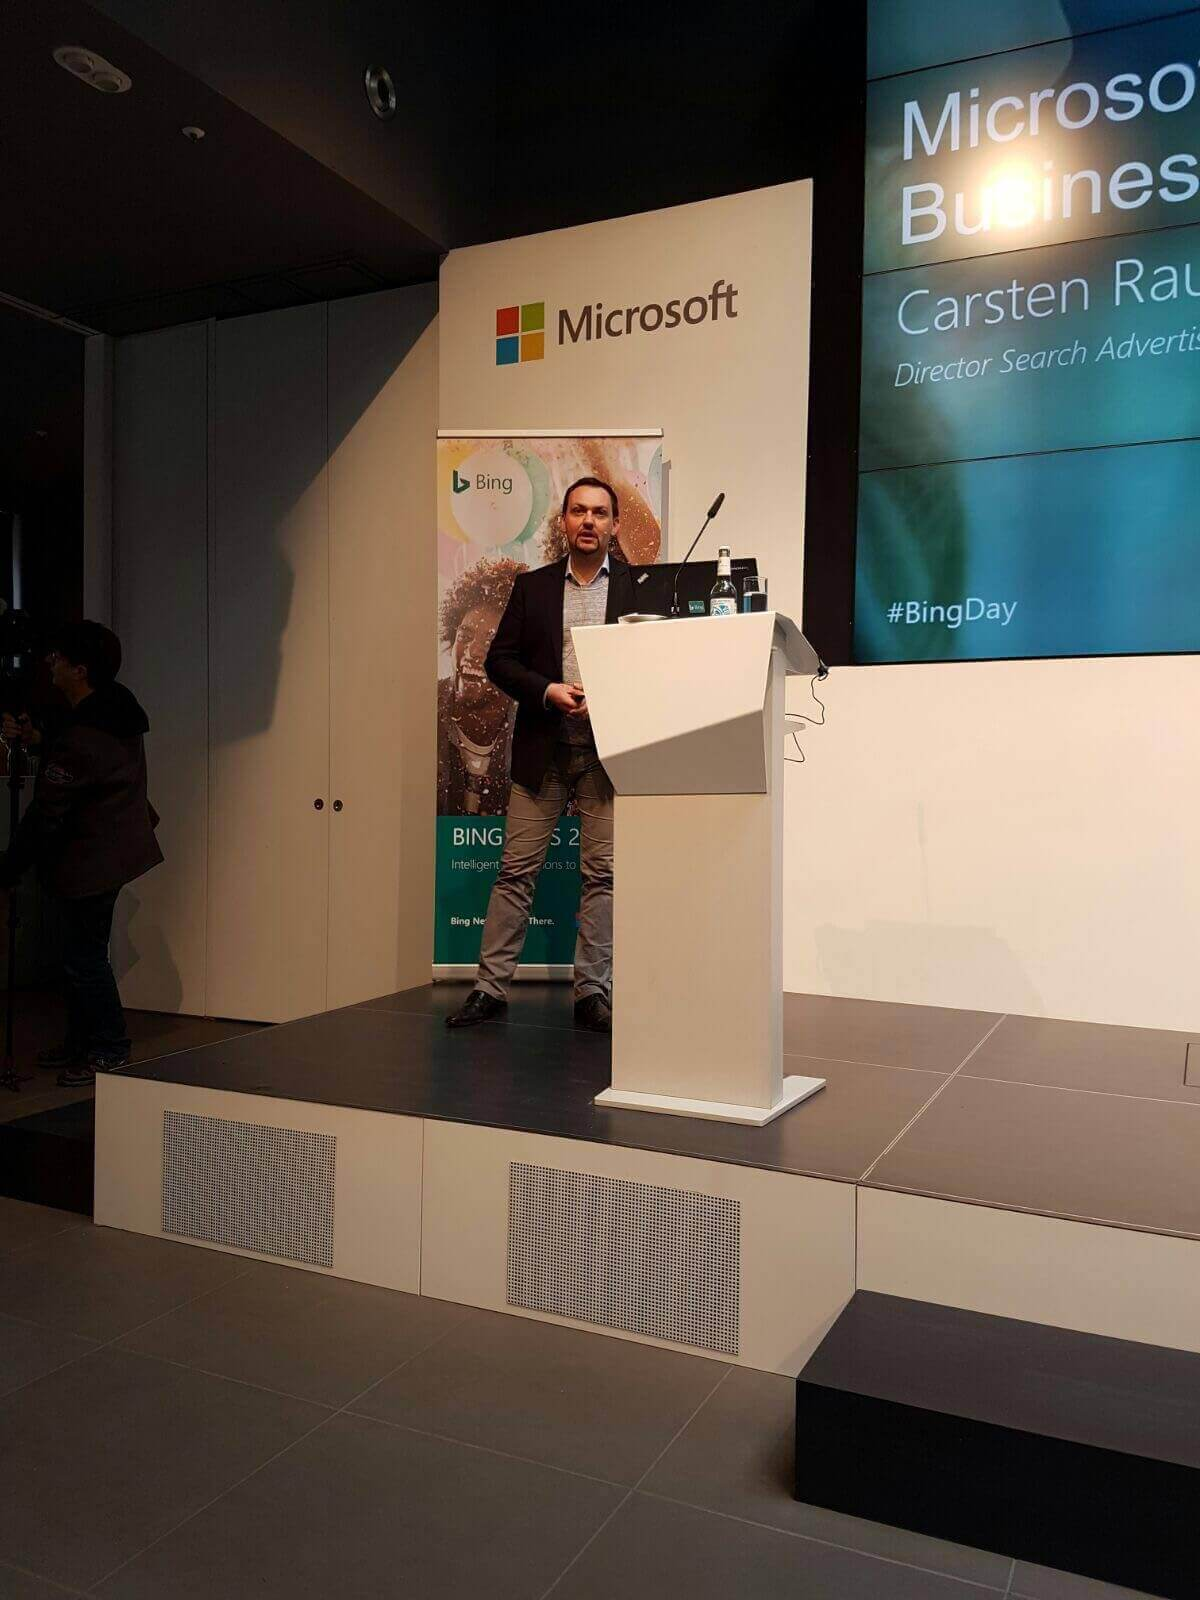 carsten-rauh-director-search-advertising-germany-eroeffnung-des-tages-microsoft-search-business-overview